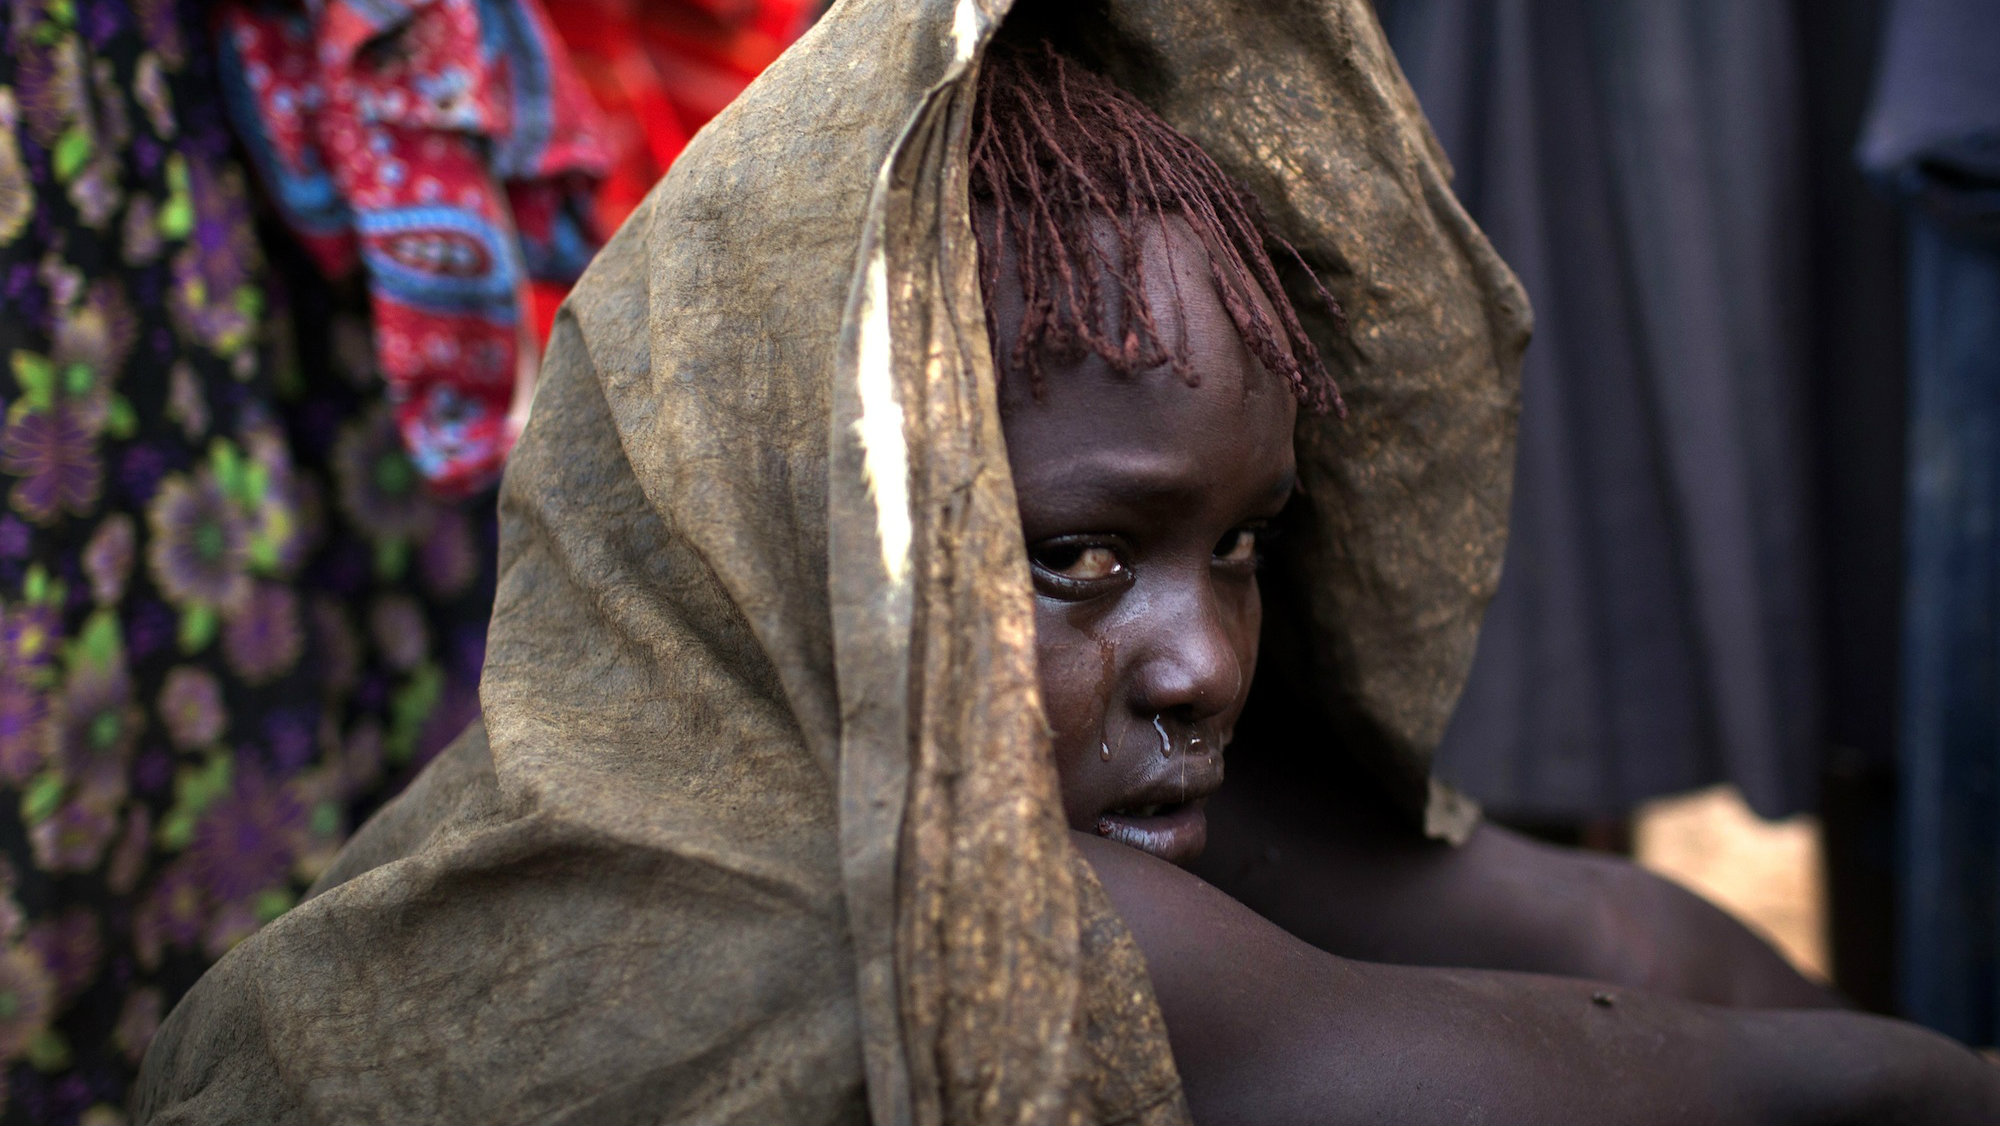 A girl in Baringo County Kenya cries after being circumcised